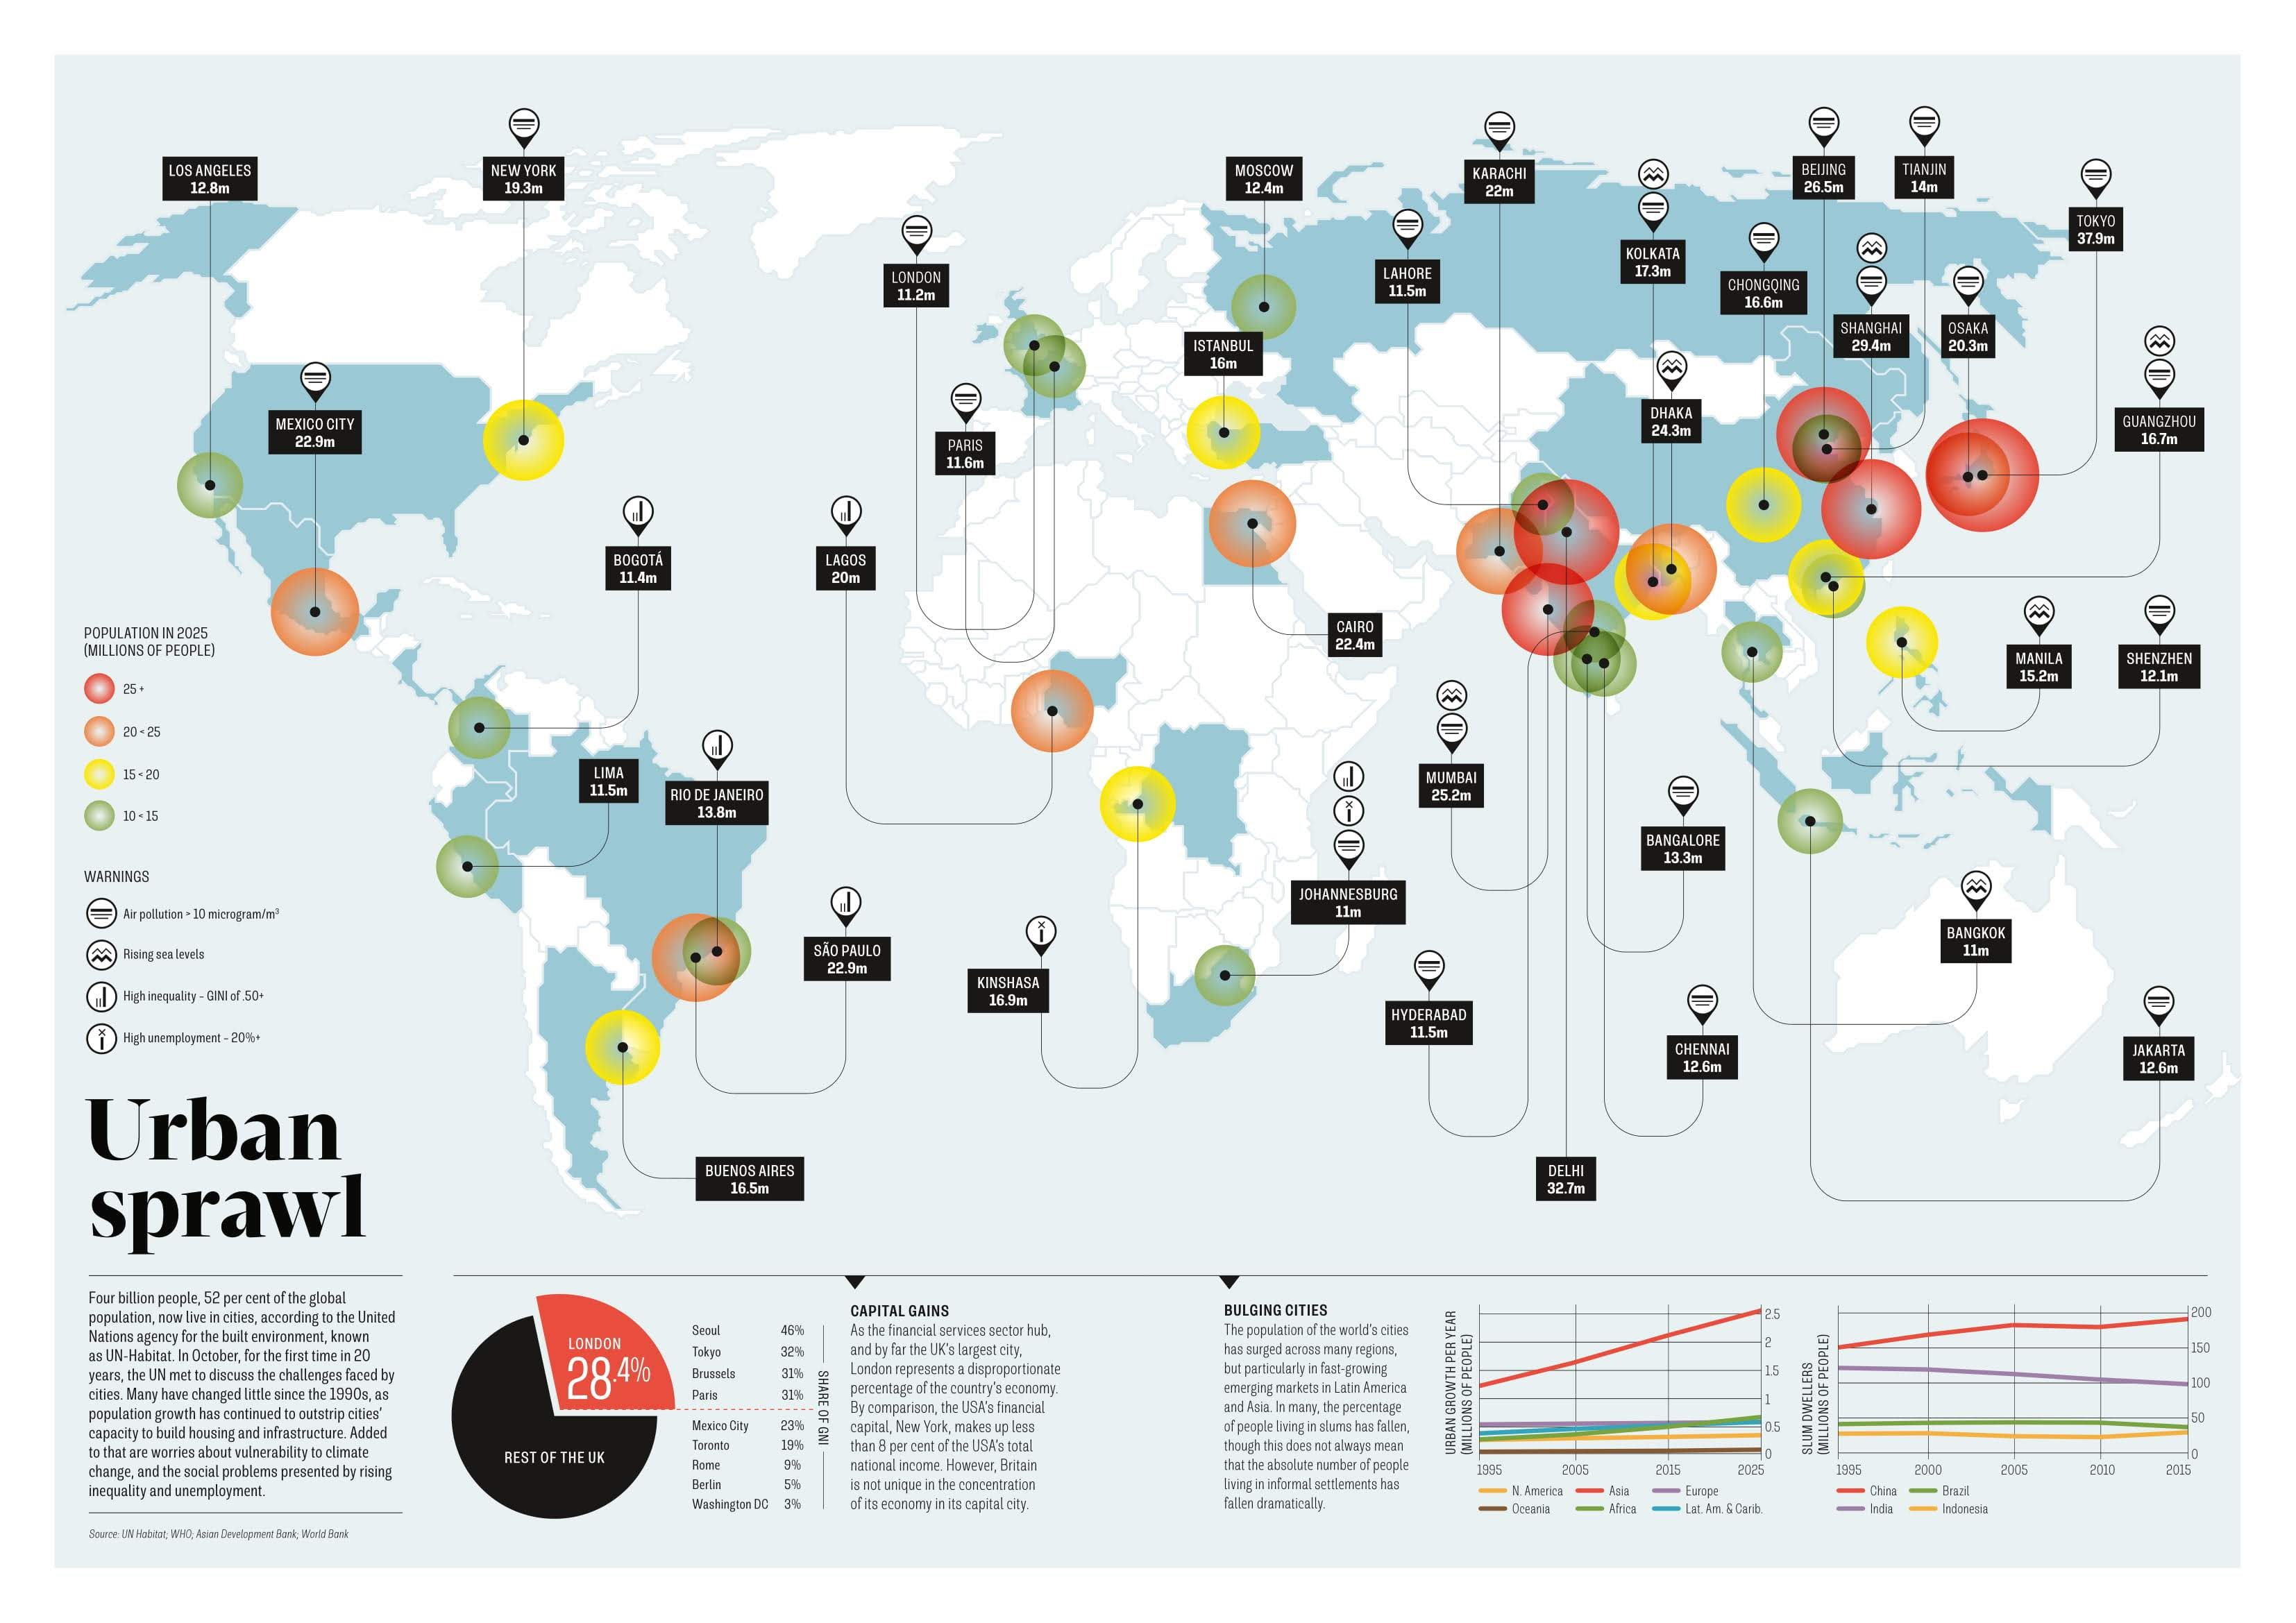 The future population growth of our cities #infographic